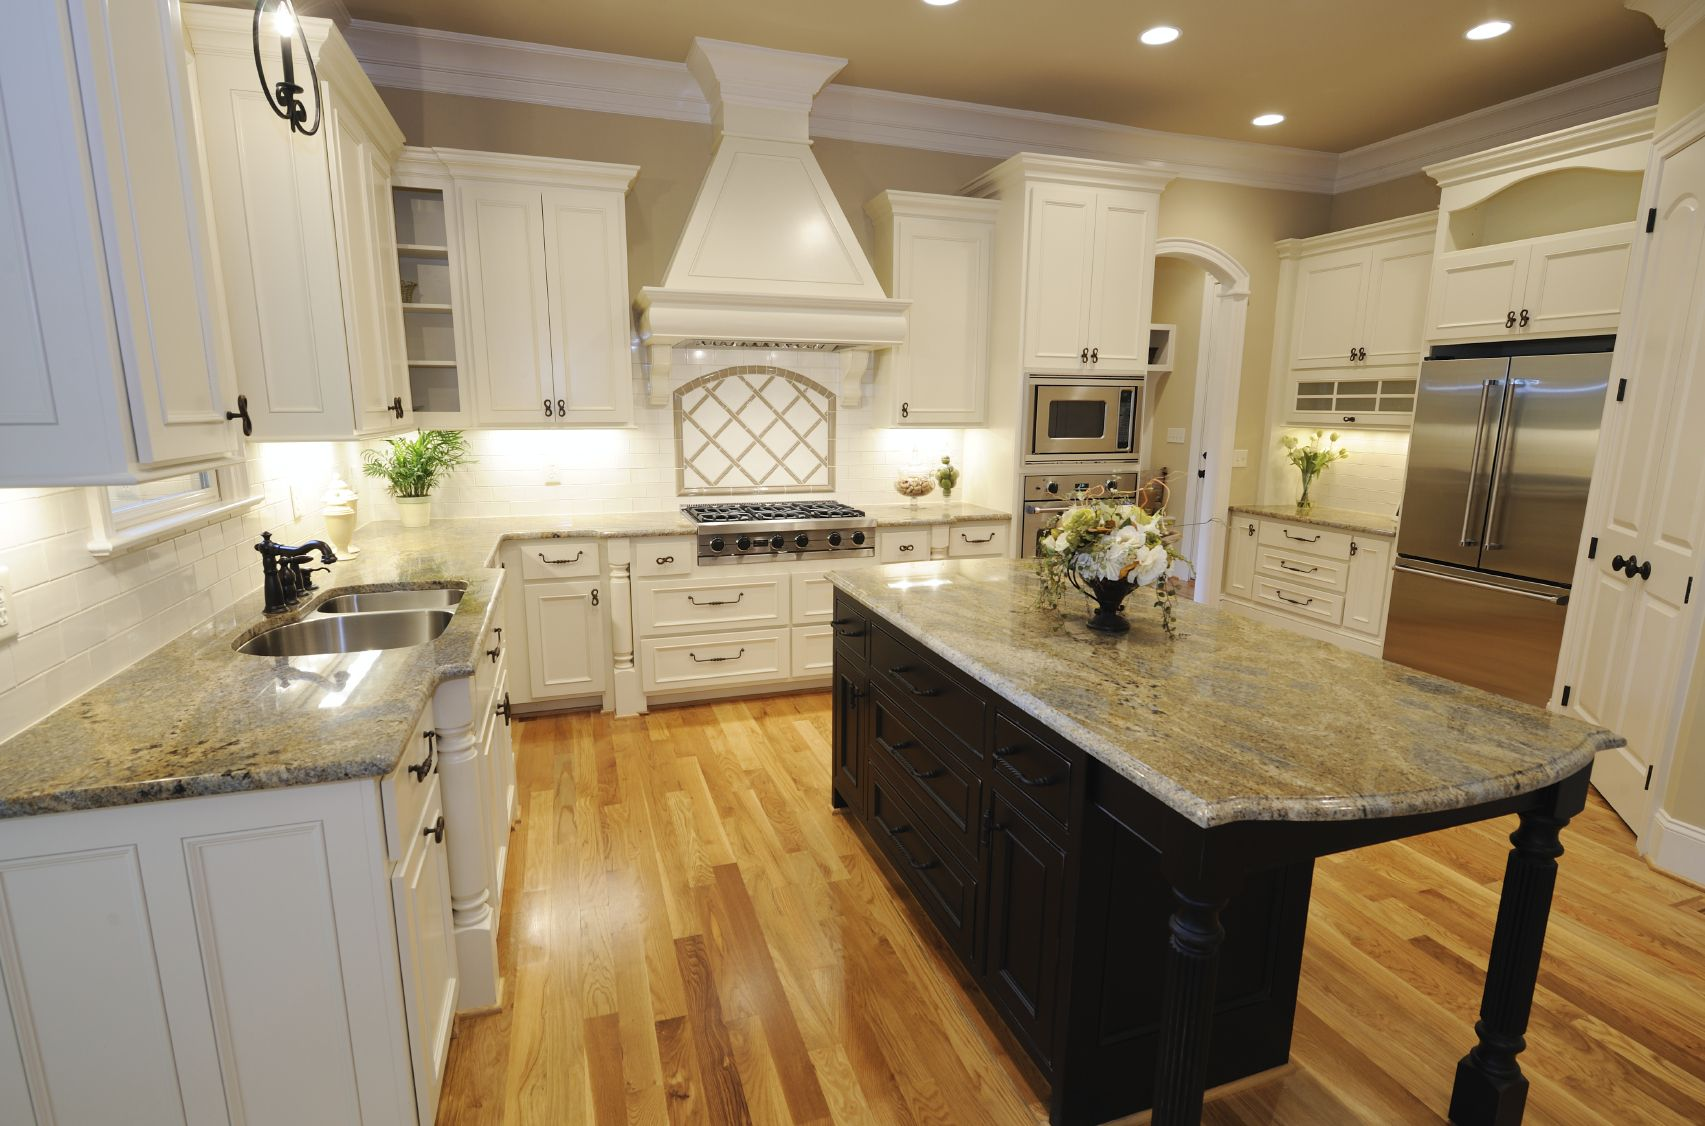 kitchen white cabinets wood floor. White cabinetry punctuated by brushed aluminum appliances in this kitchen  over natural hardwood flooring and 150 U Shape Kitchen Layout Ideas for 2018 Marble countertops